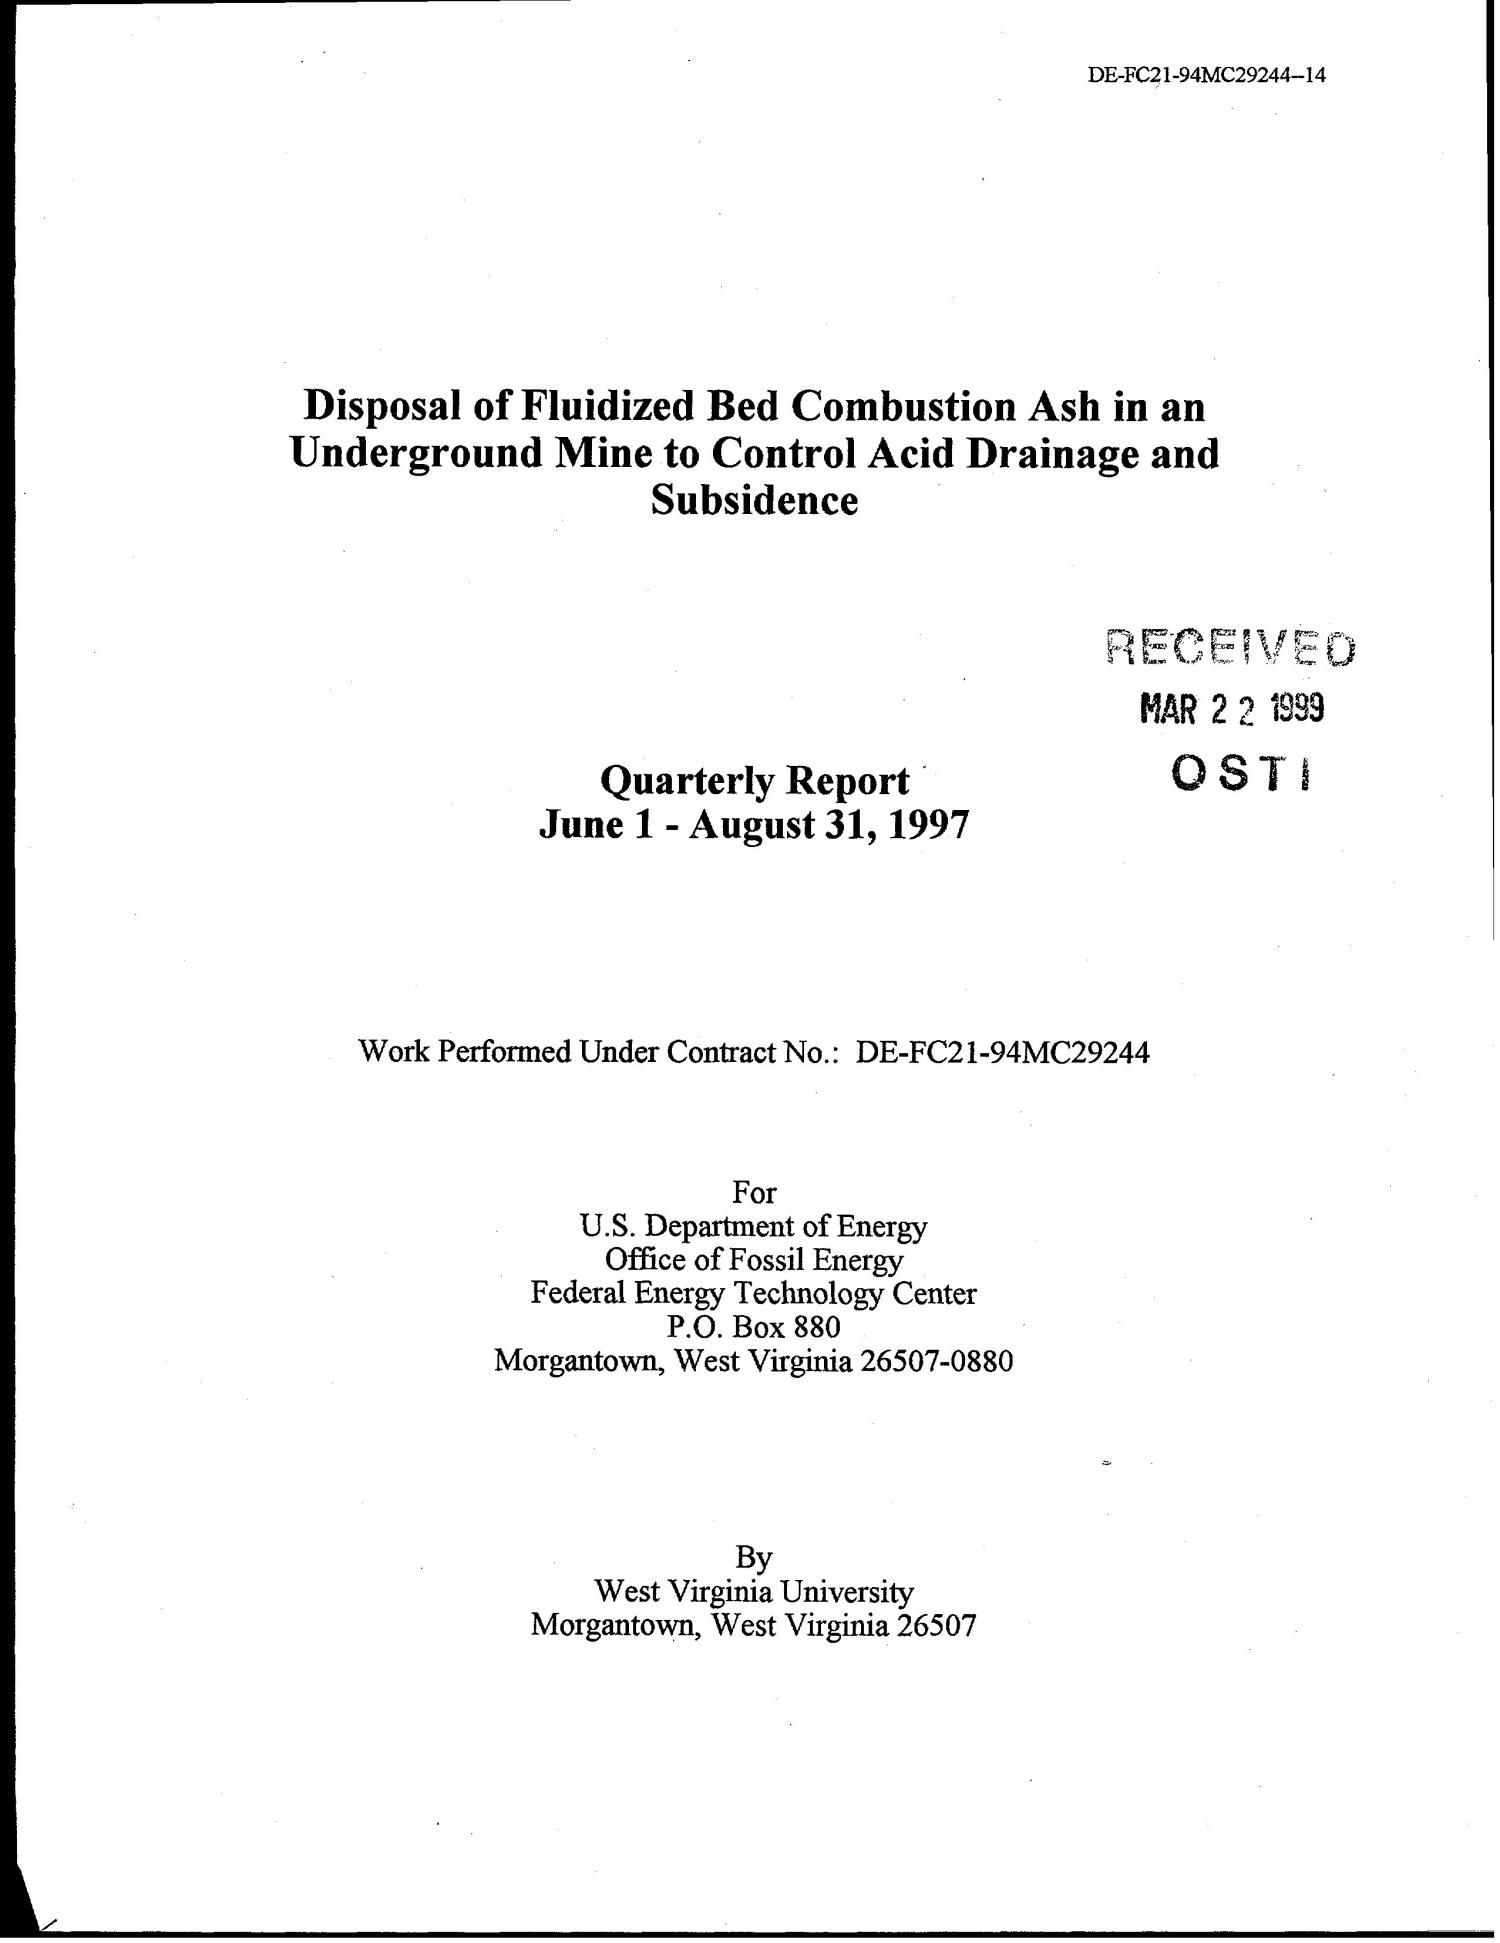 Disposal of Fluidized Bed Combustion Ash in an Underground Mine to Control Acid Drainage and Subsidence. Quarterly report, June 1 - August 31, 1997                                                                                                      [Sequence #]: 1 of 114